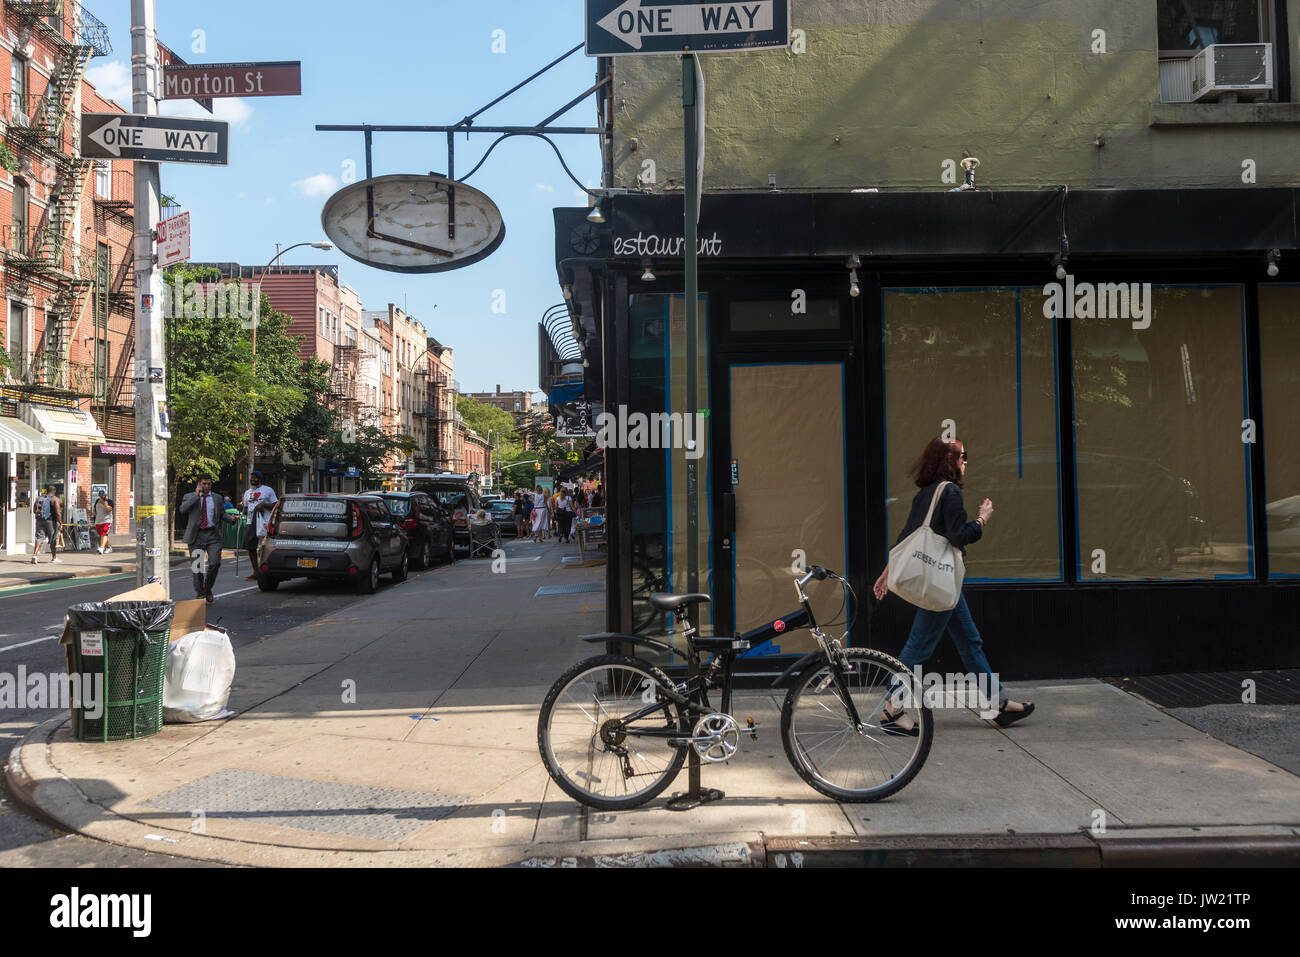 New York, NY, USA - 9 August 2017 - Two of many empty storefronts for lease on the once trendy Bleecker Street remain vacant due to high rent. ©Stacy Walsh Rosenstock/Alamy - Stock Image